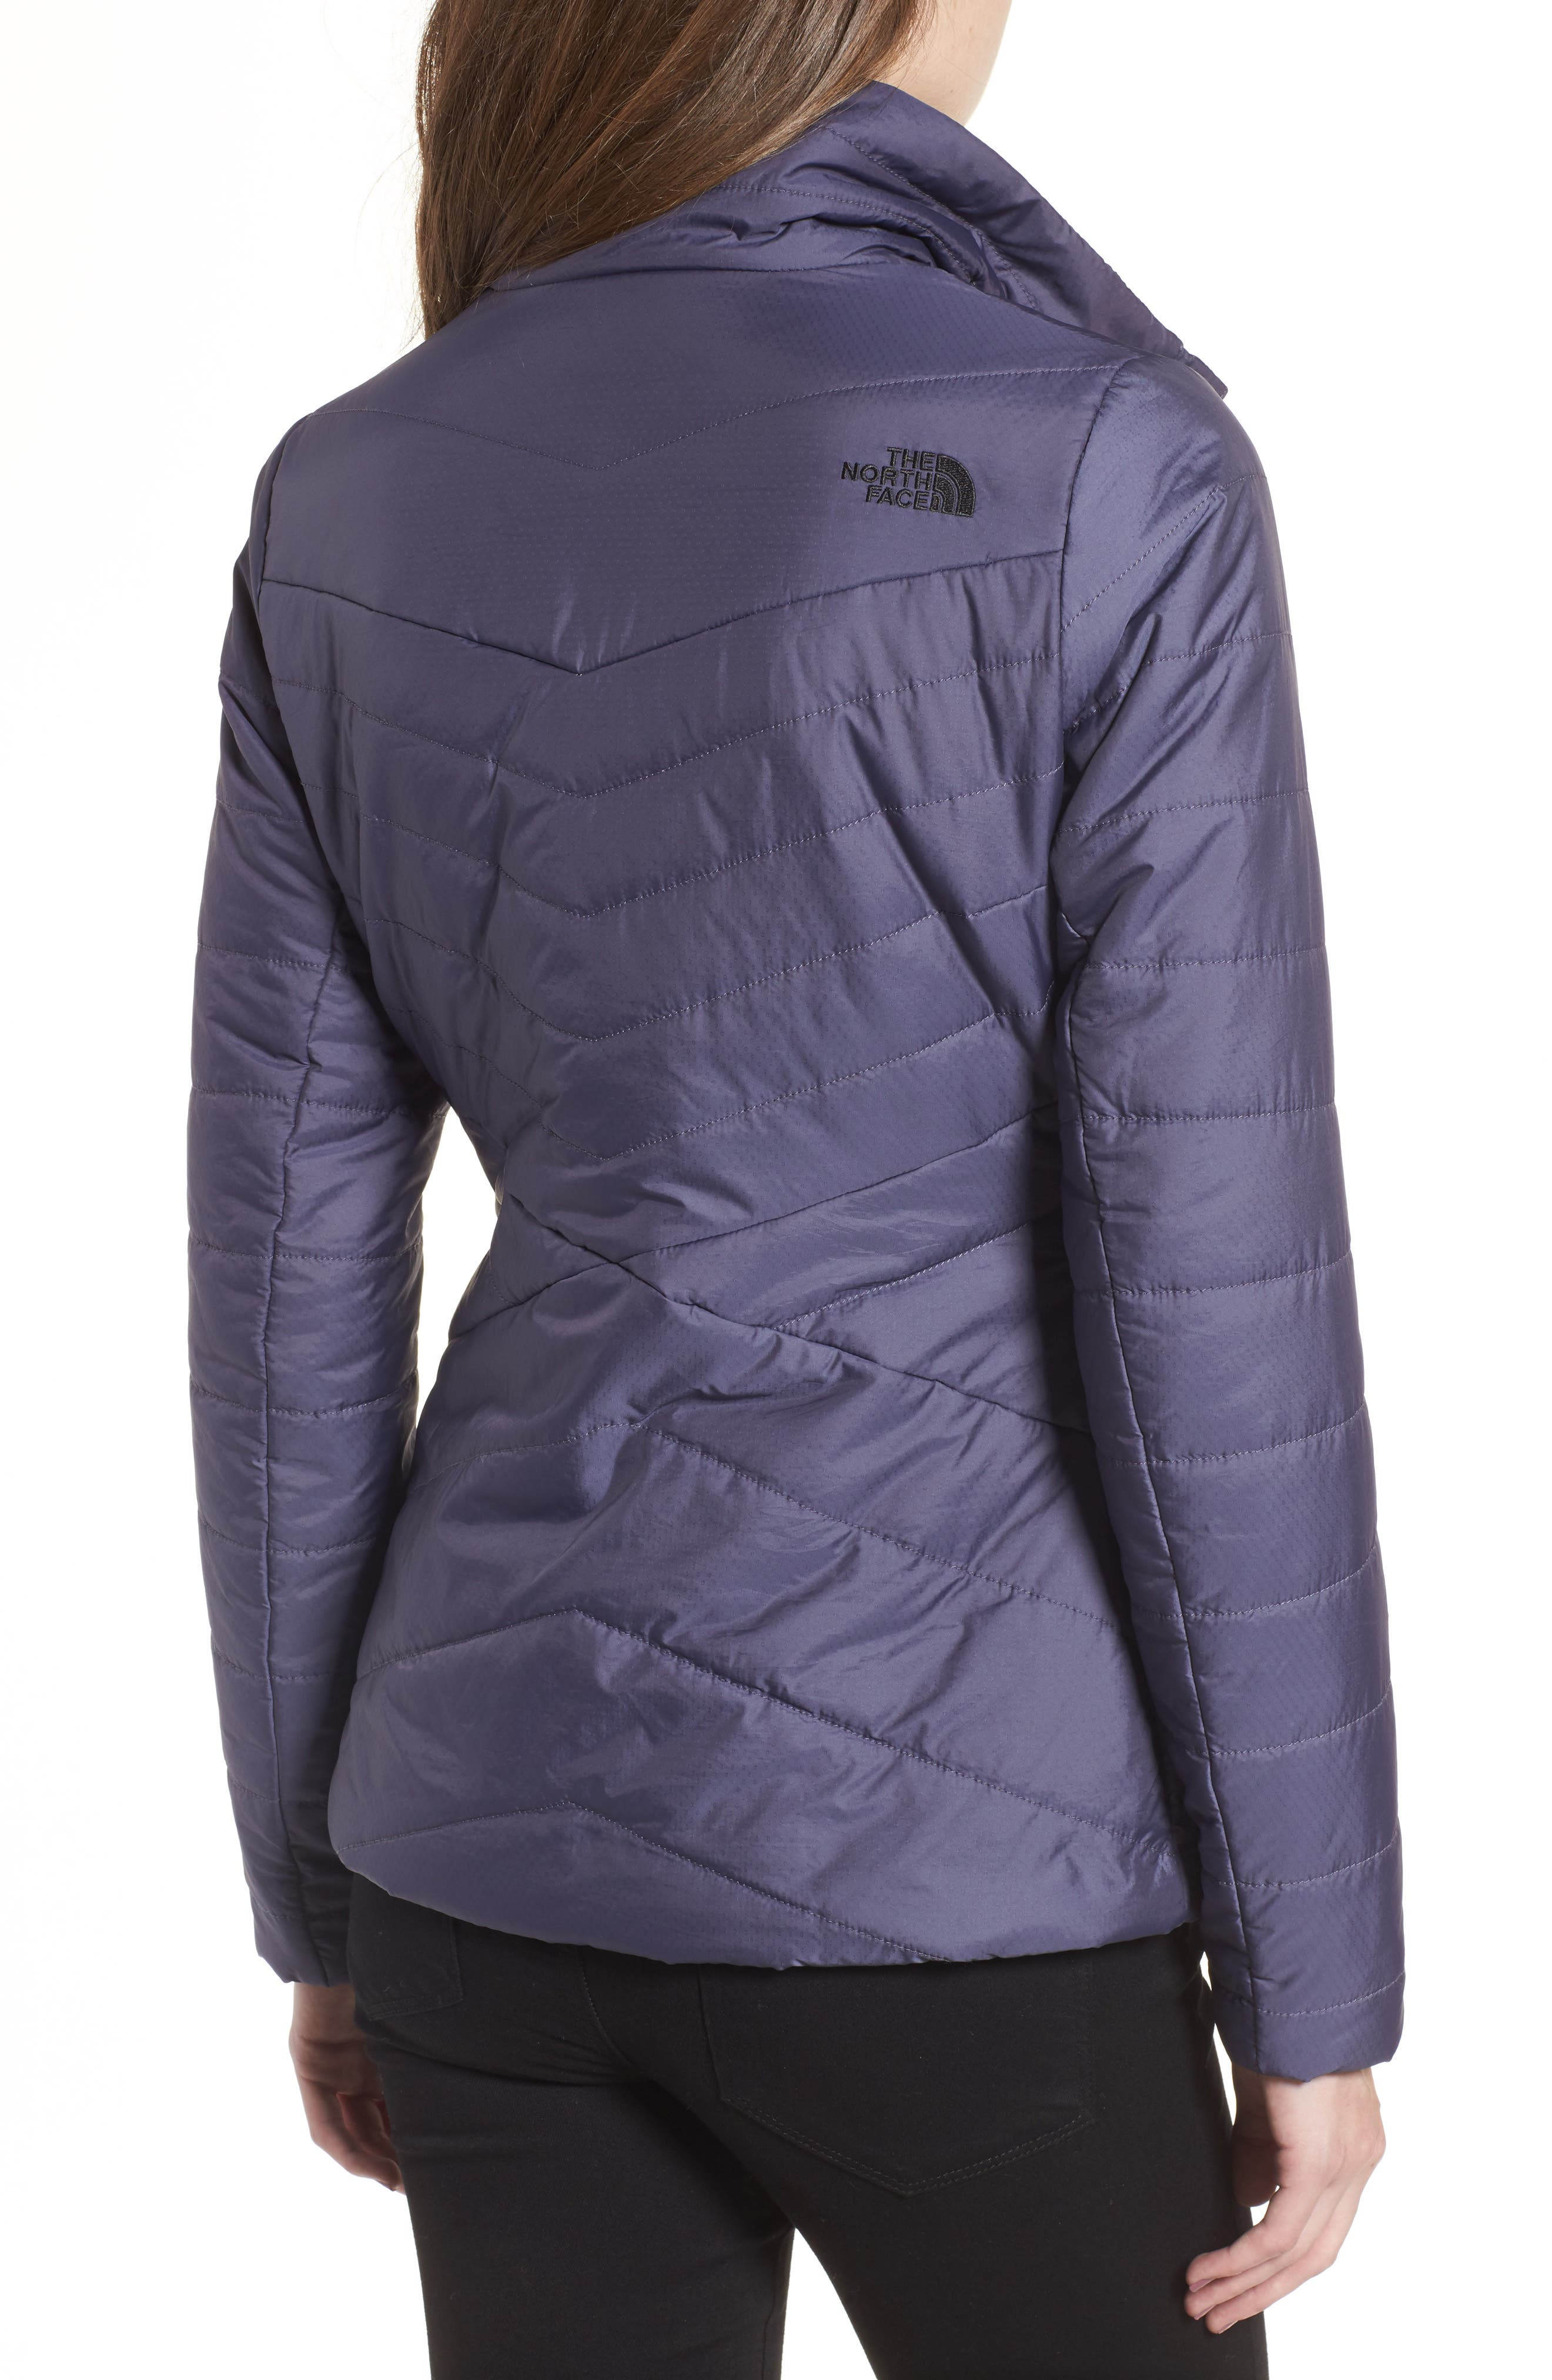 Moonlight Heatseeker Insulated Jacket,                             Alternate thumbnail 2, color,                             Greystone Blue